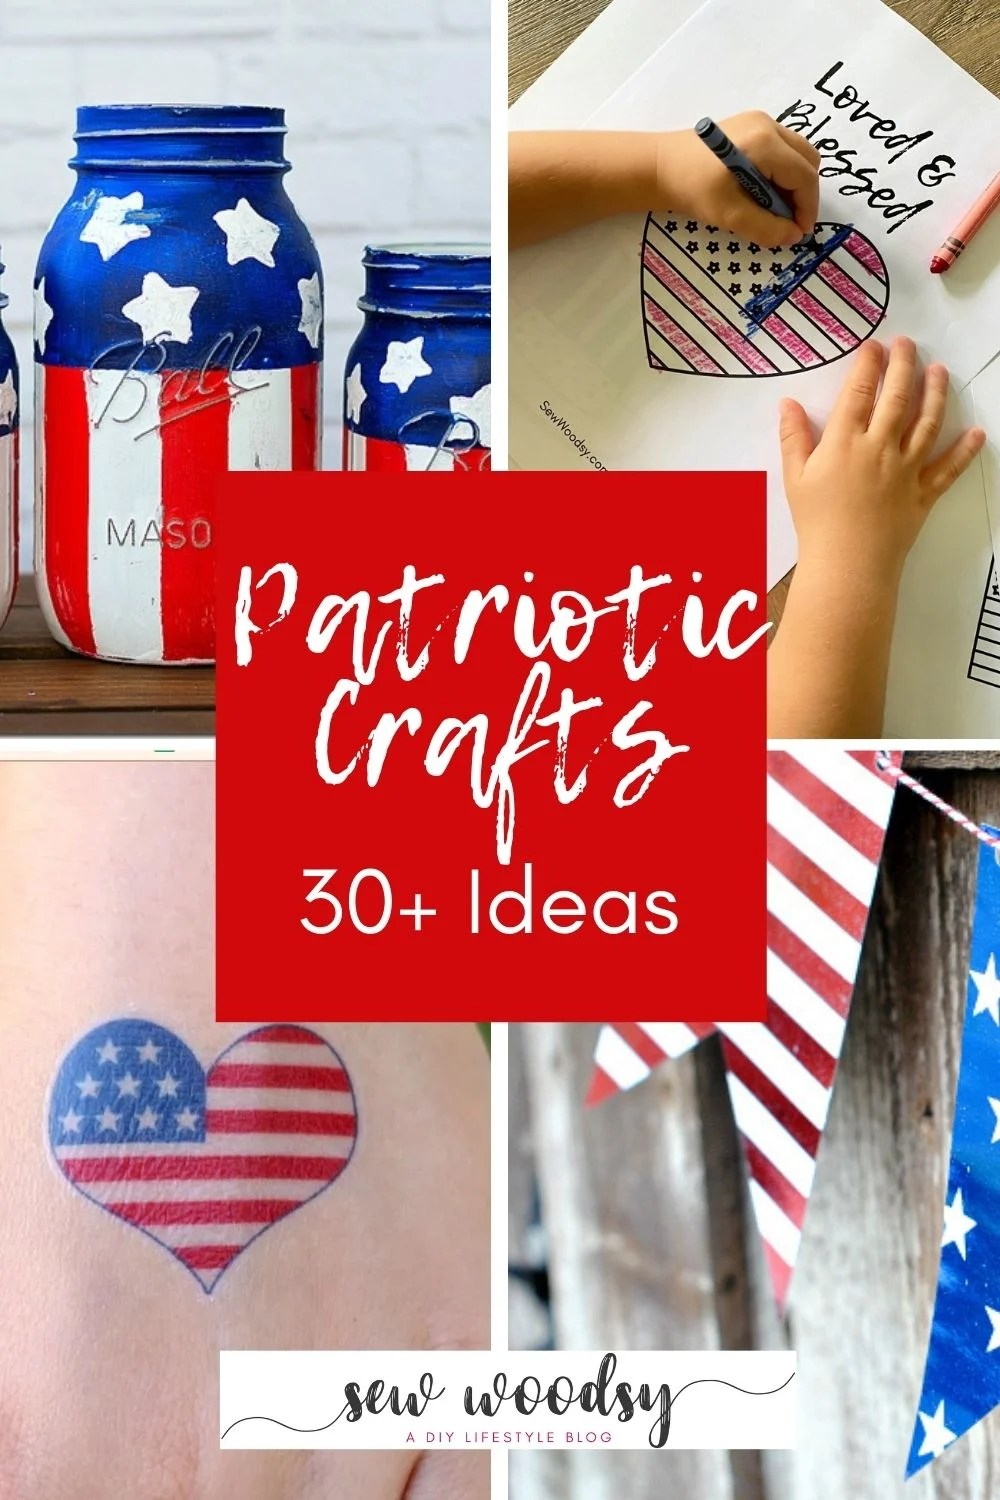 Four photos of various patriotic crafts with post title in the middle for Pinterest.